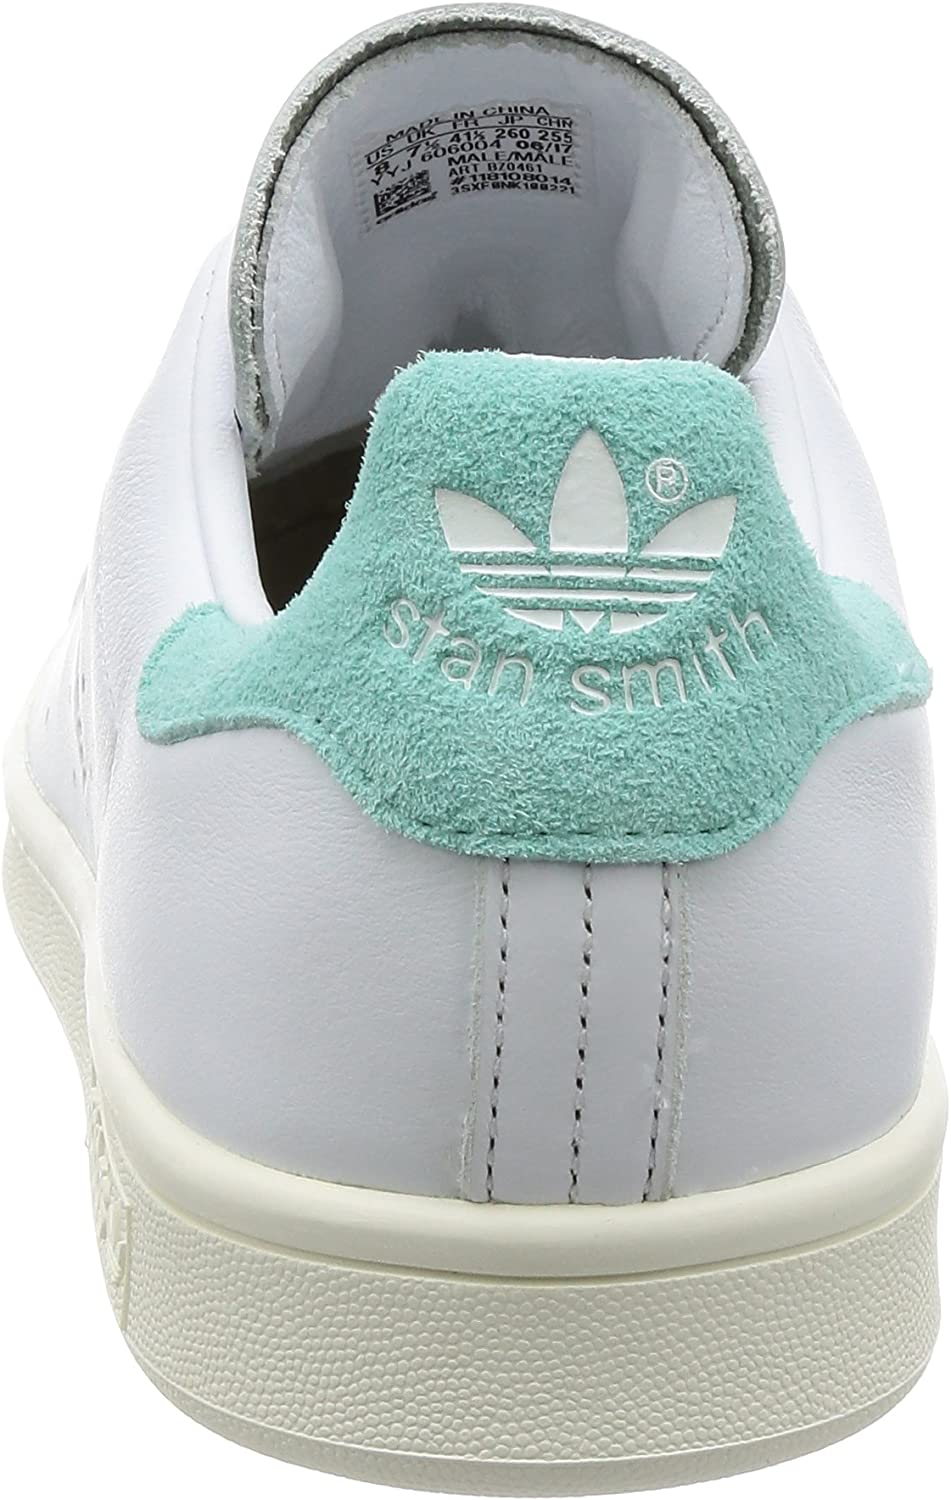 adidas Originals Stan Smith Wit (FTWRBLANCO)